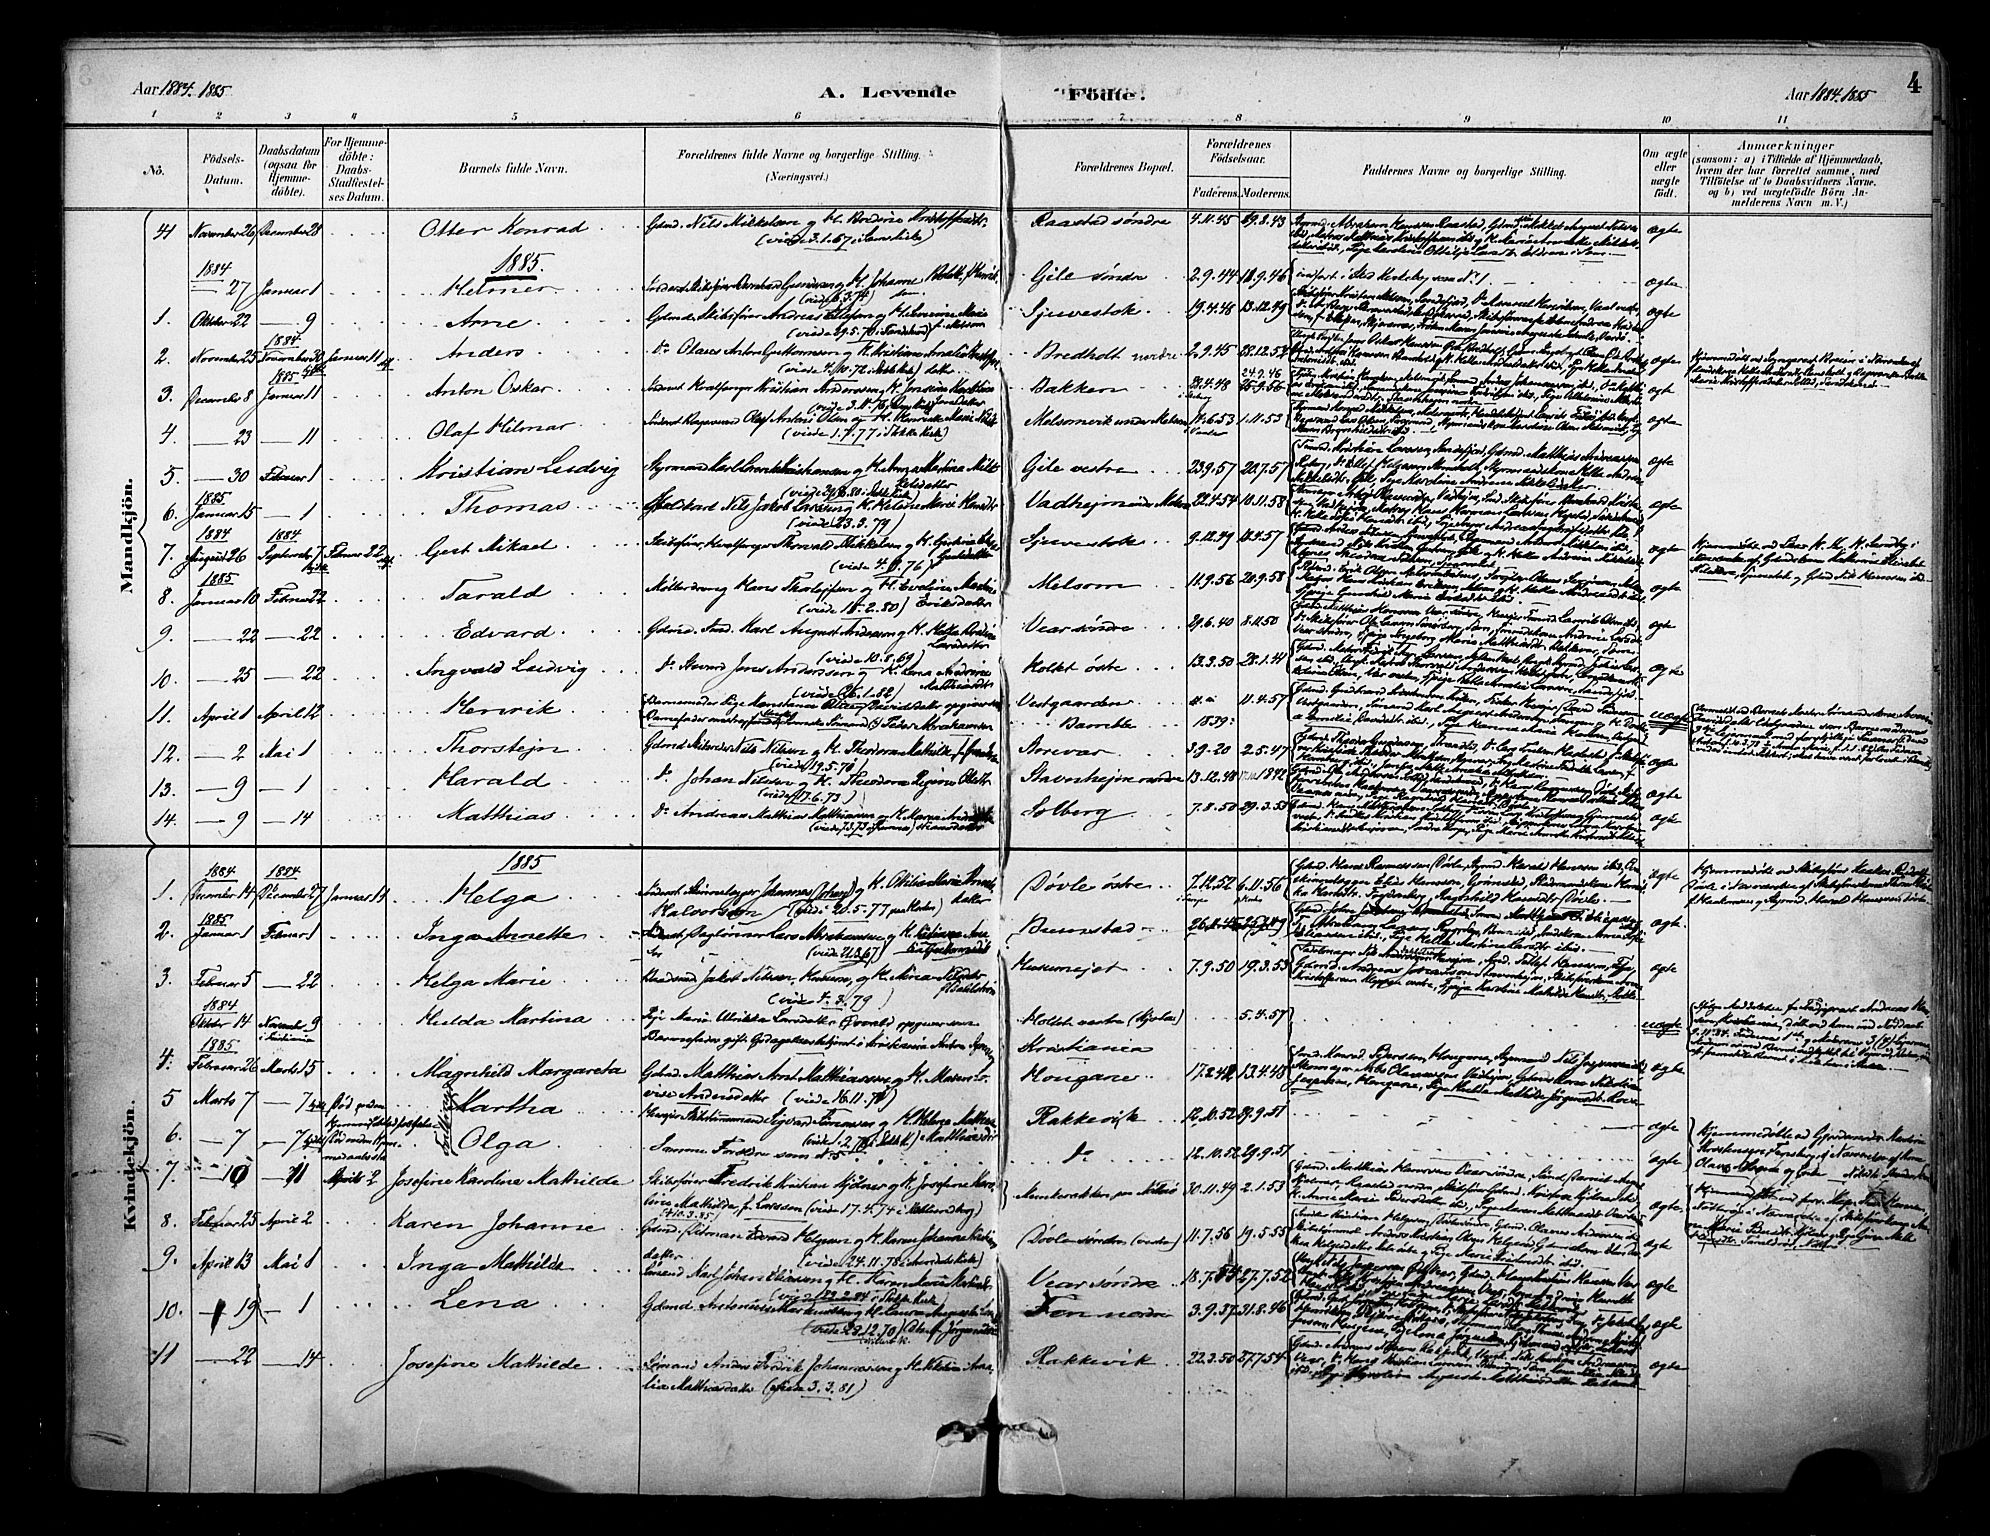 SAKO, Stokke kirkebøker, F/Fa/L0010: Parish register (official) no. I 10, 1884-1903, p. 4